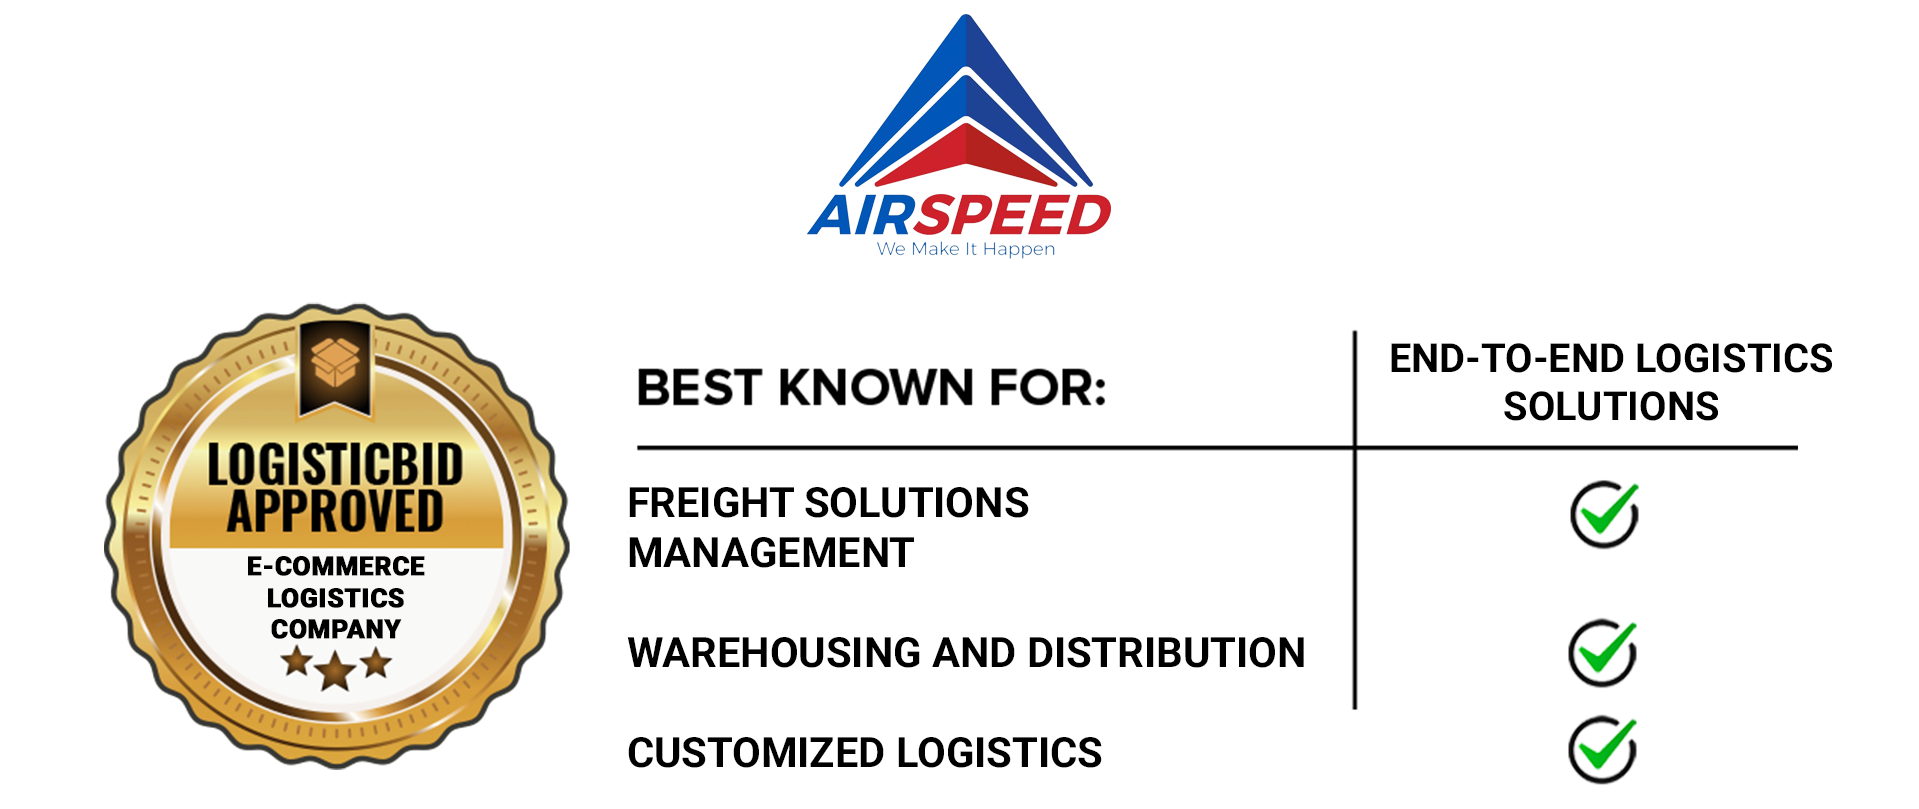 Trucking Services of Leading E-commerce Logistics Company - Airspeed